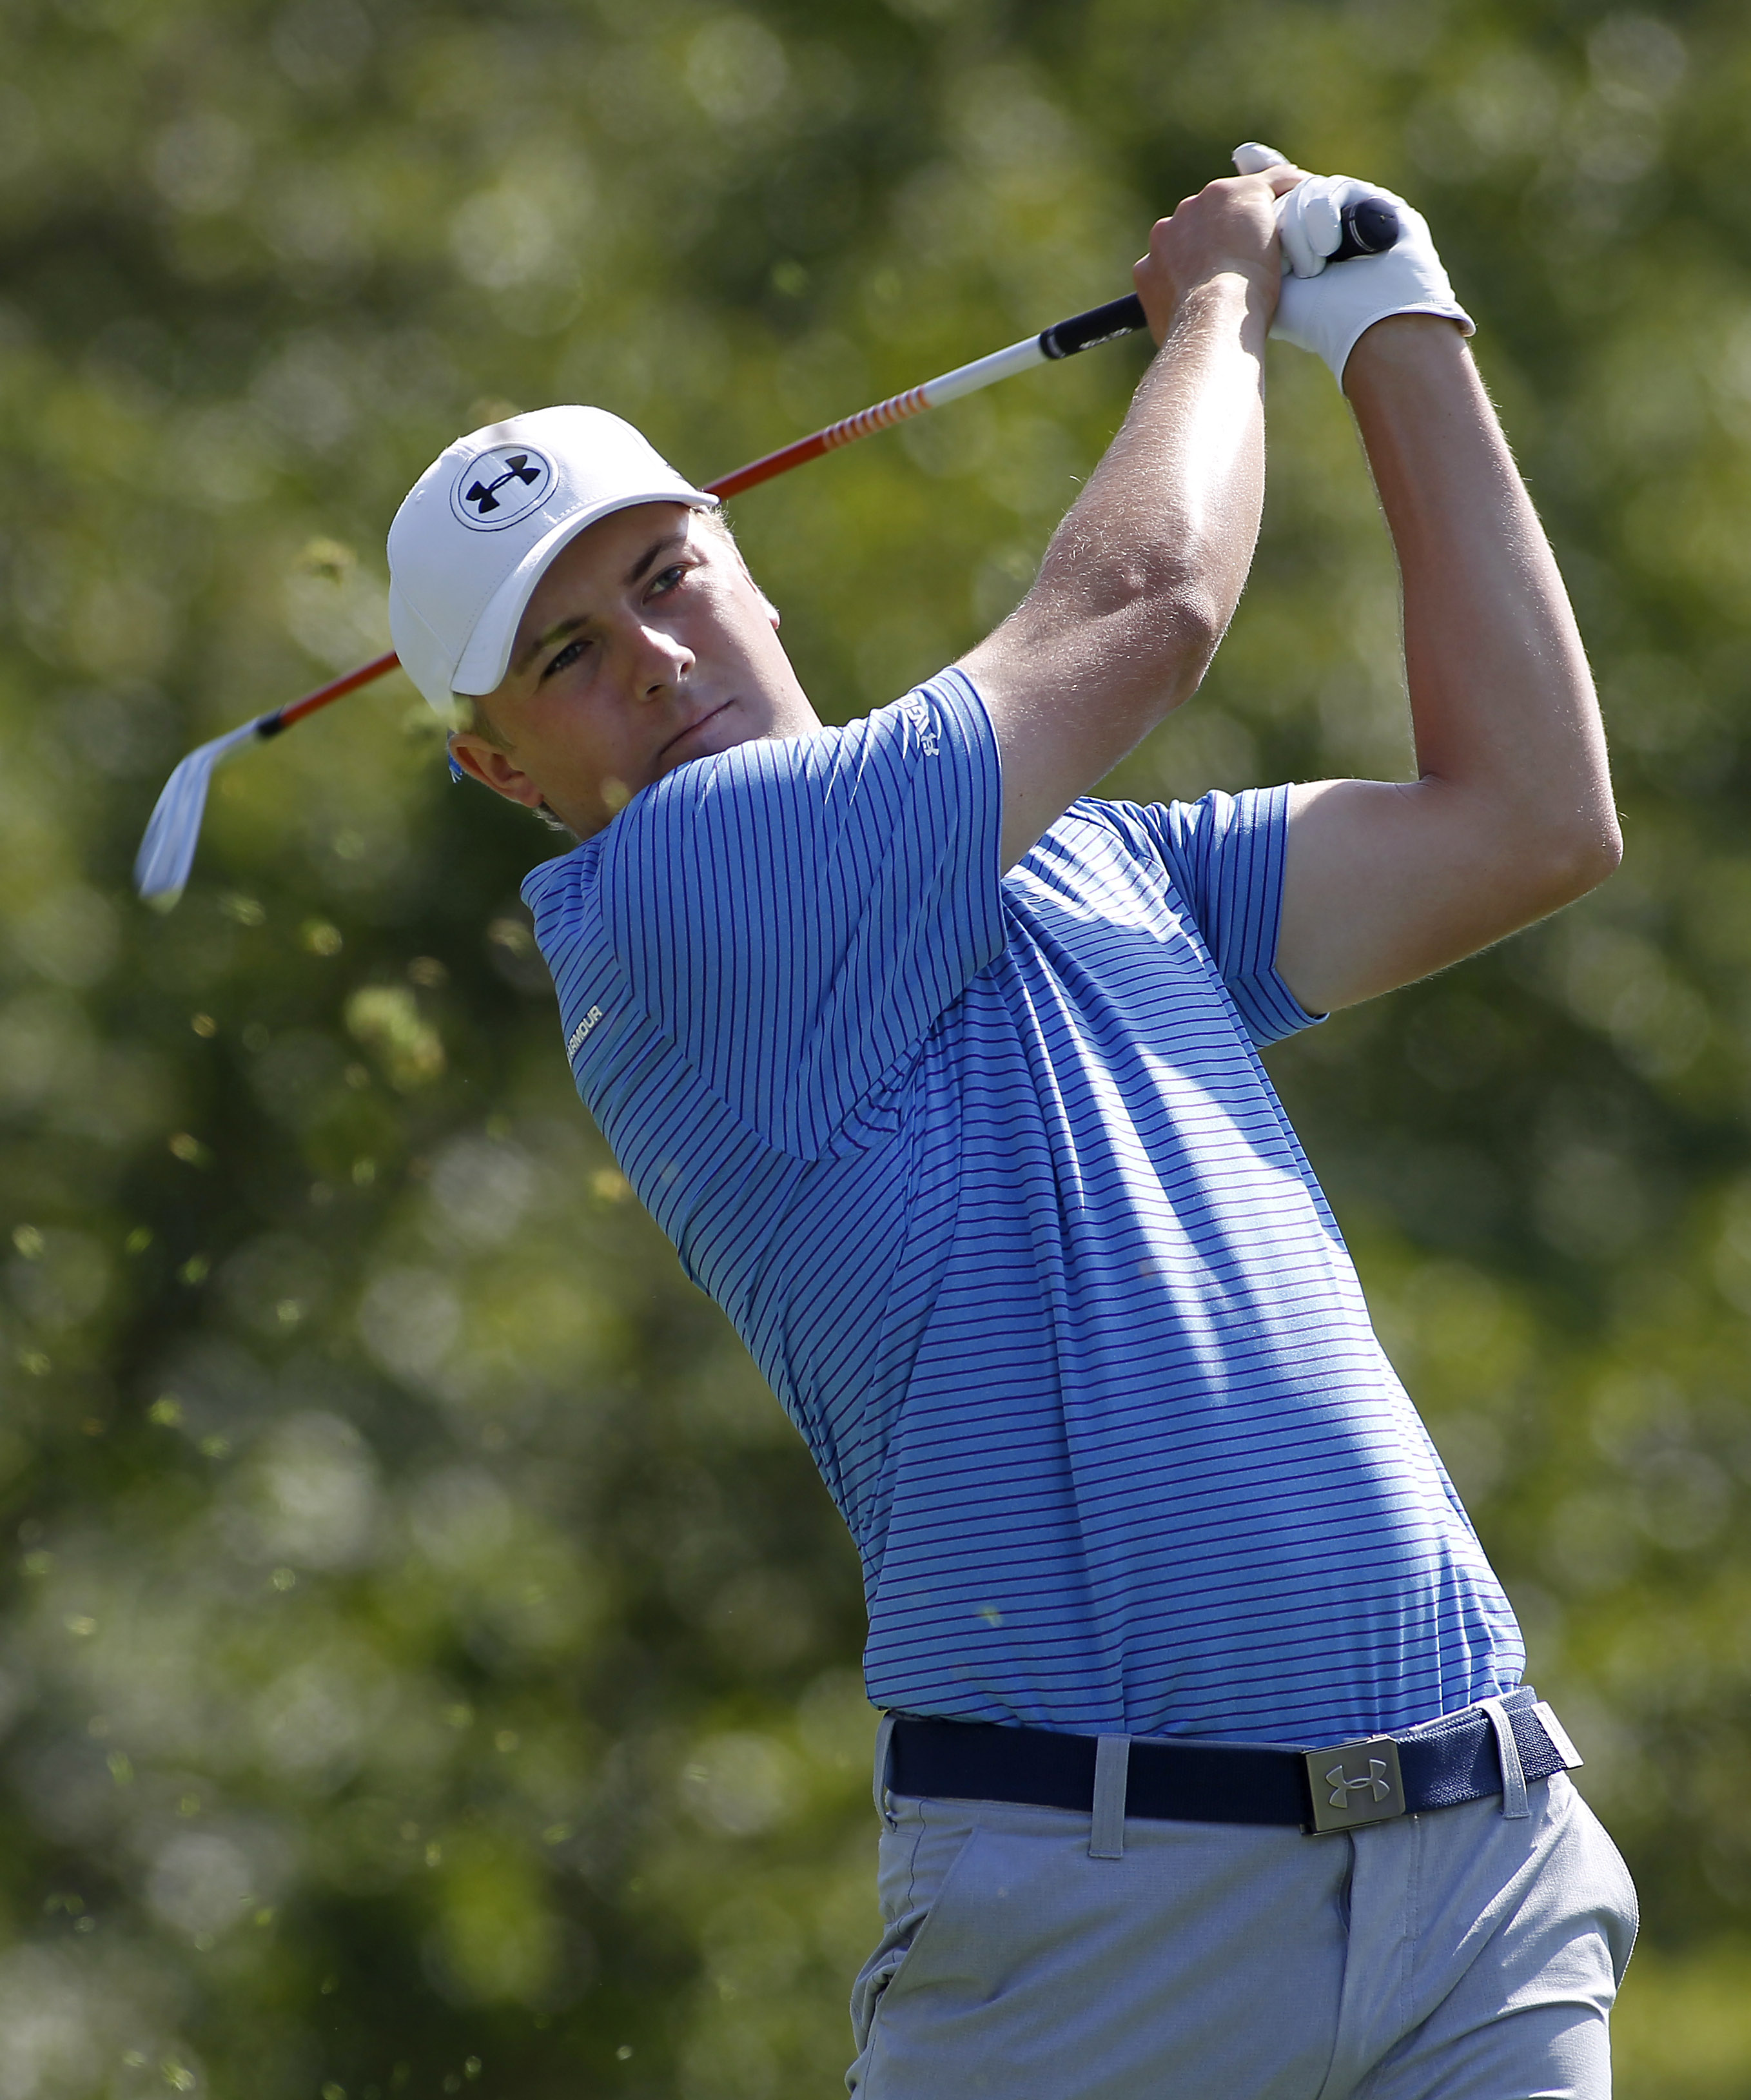 Jordan Spieth hits his tee shot on the 17th hole during the first round of the Deutsche Bank Championship golf tournament in Norton, Mass., Friday, Sept. 4, 2015. (AP Photo/Stew Milne)